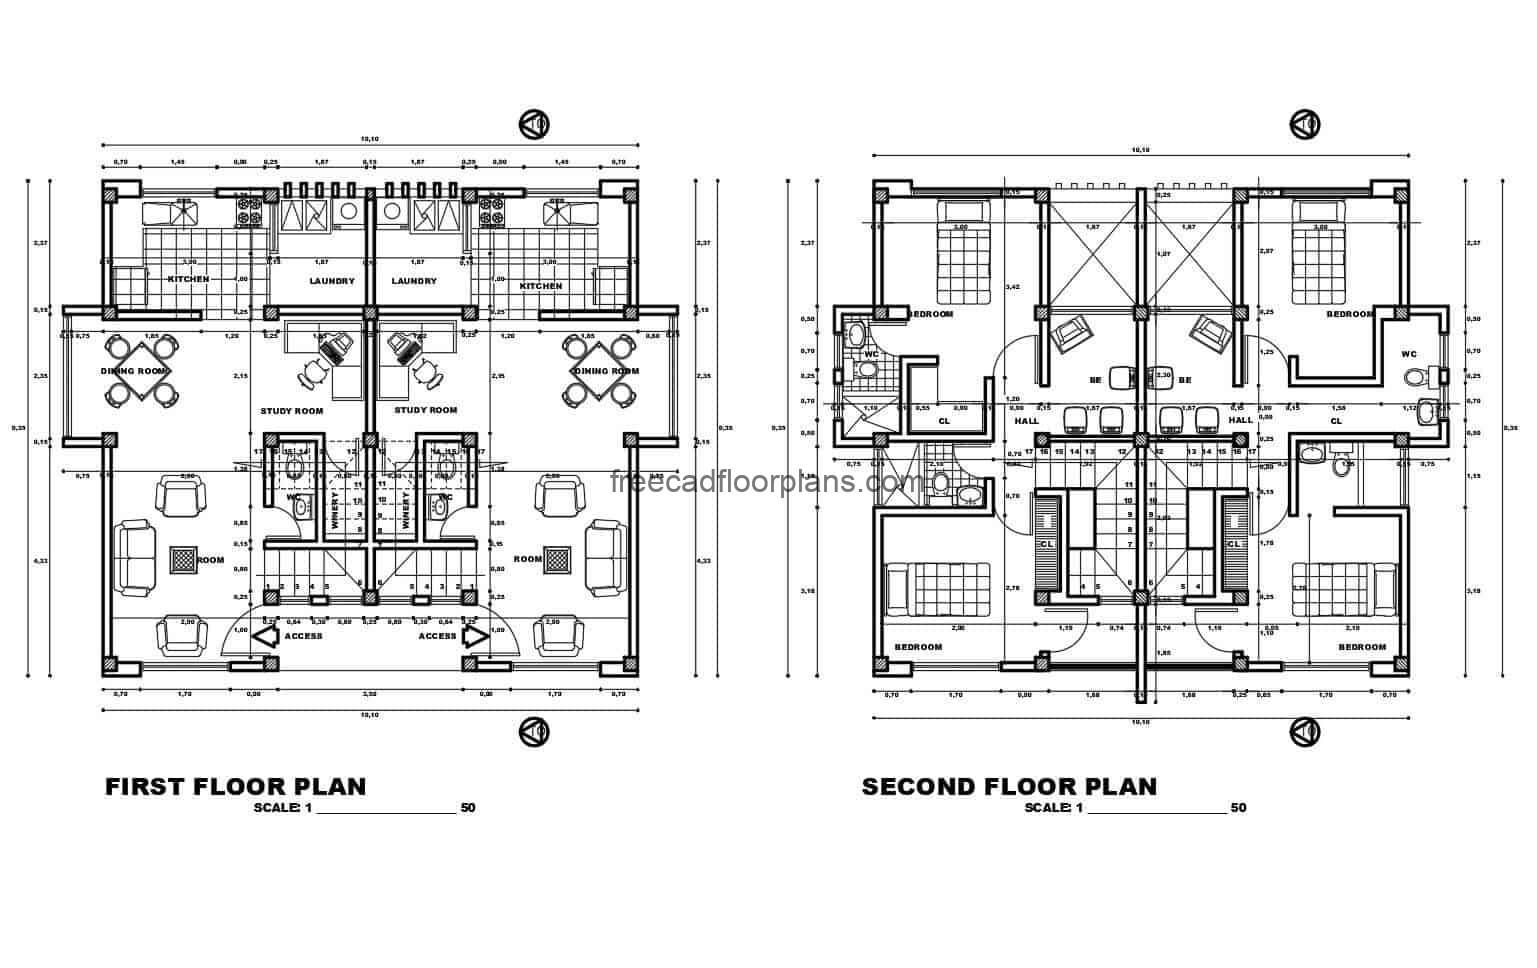 Architectural project with detail plans in DWG autocad format, of a duplex family house on two levels, facades, floors with details and dwg blocks for free download